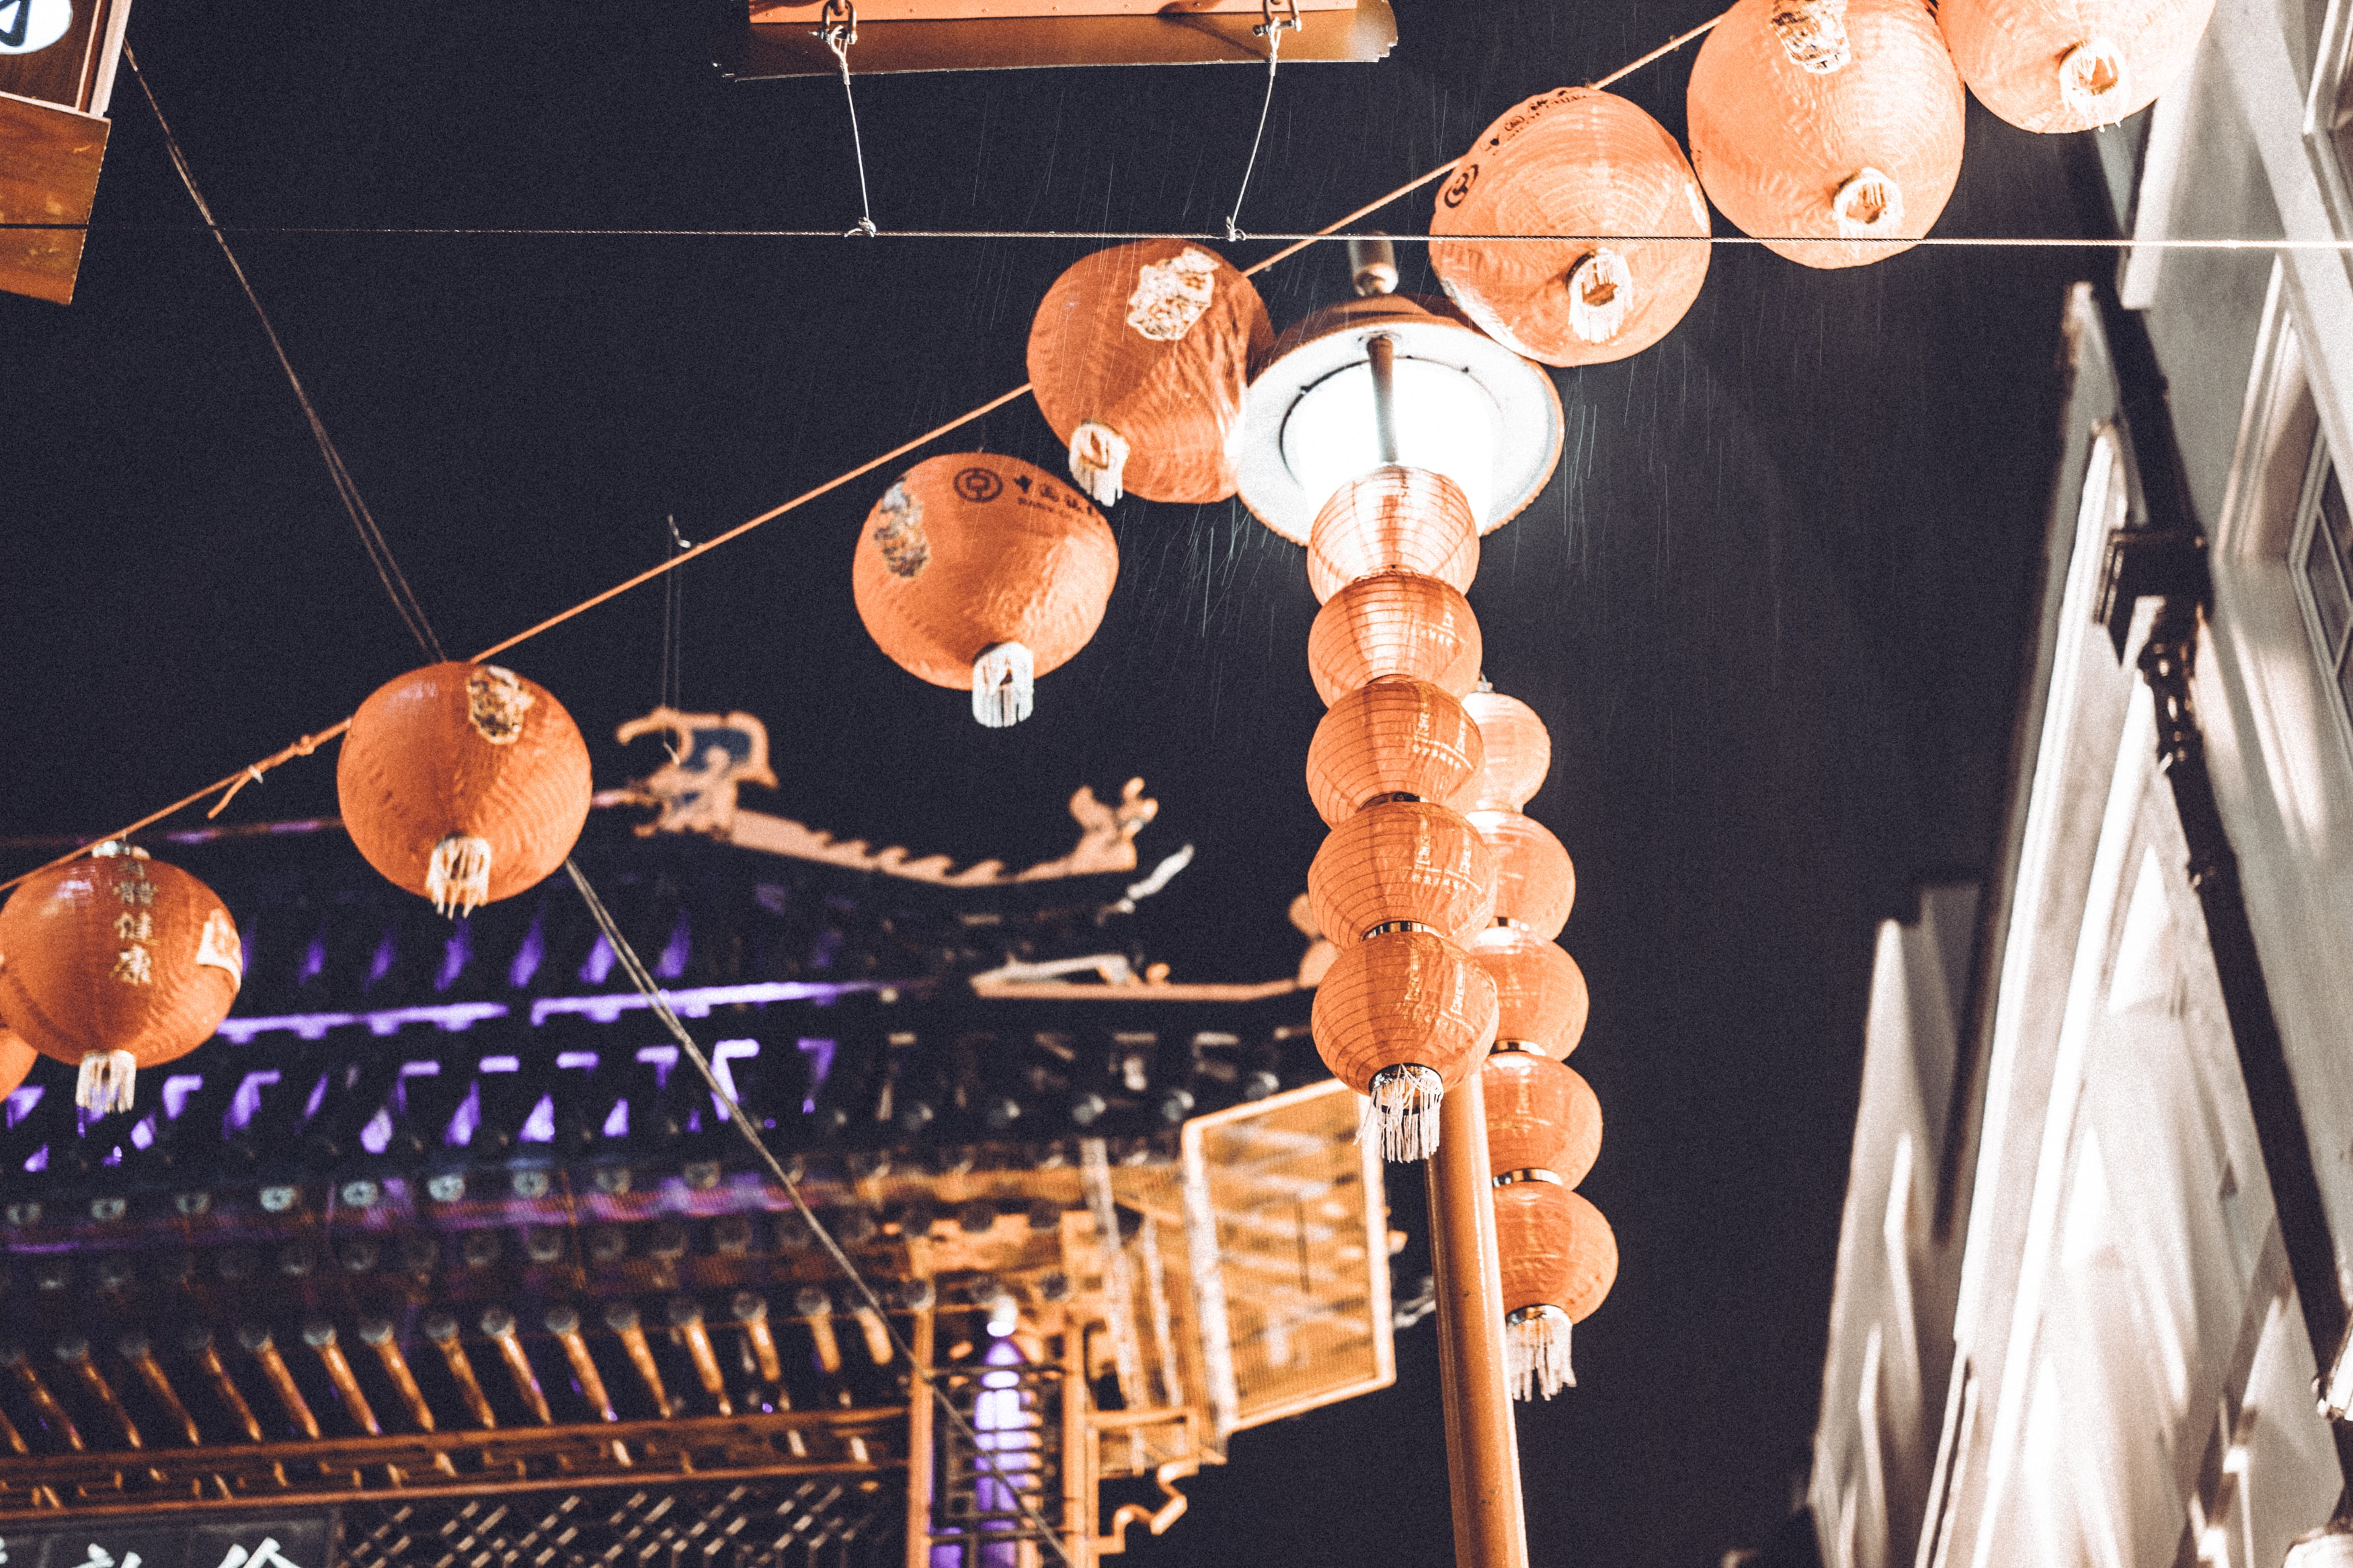 Strings of paper lanterns aside a lit up pagoda in Chinatown London Market